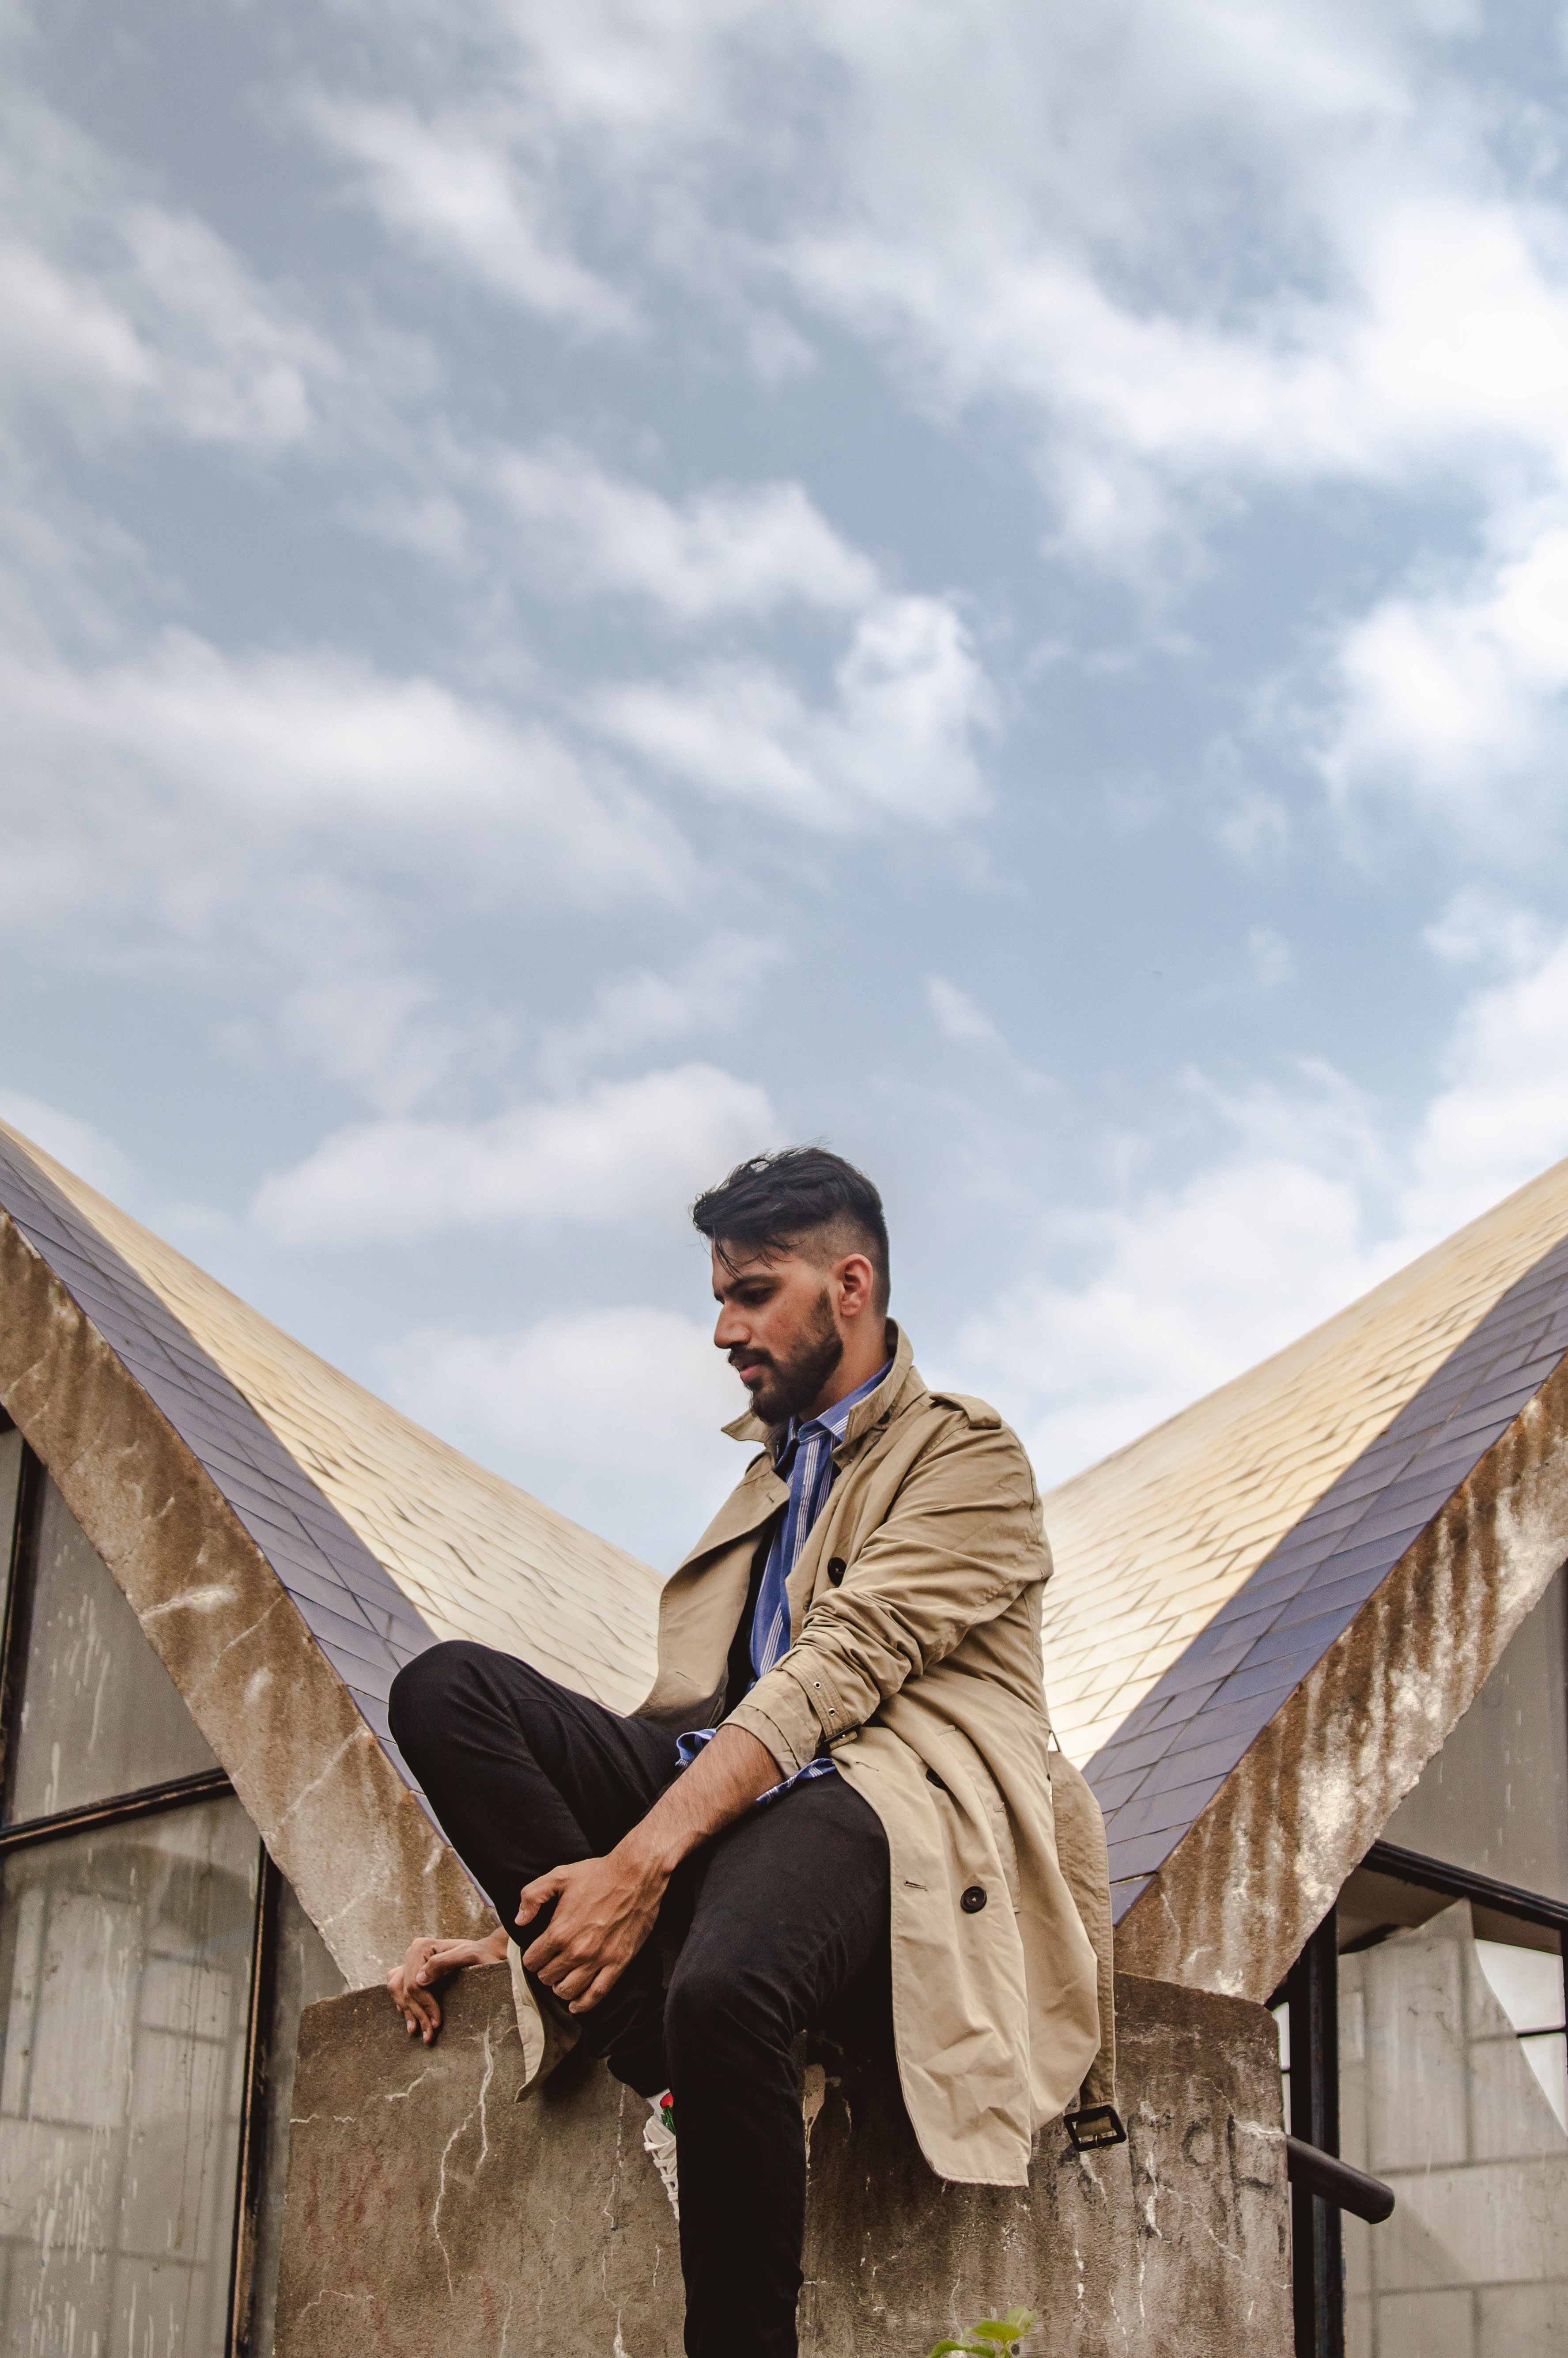 Man Sitting on Gray and Brown Roof Surface